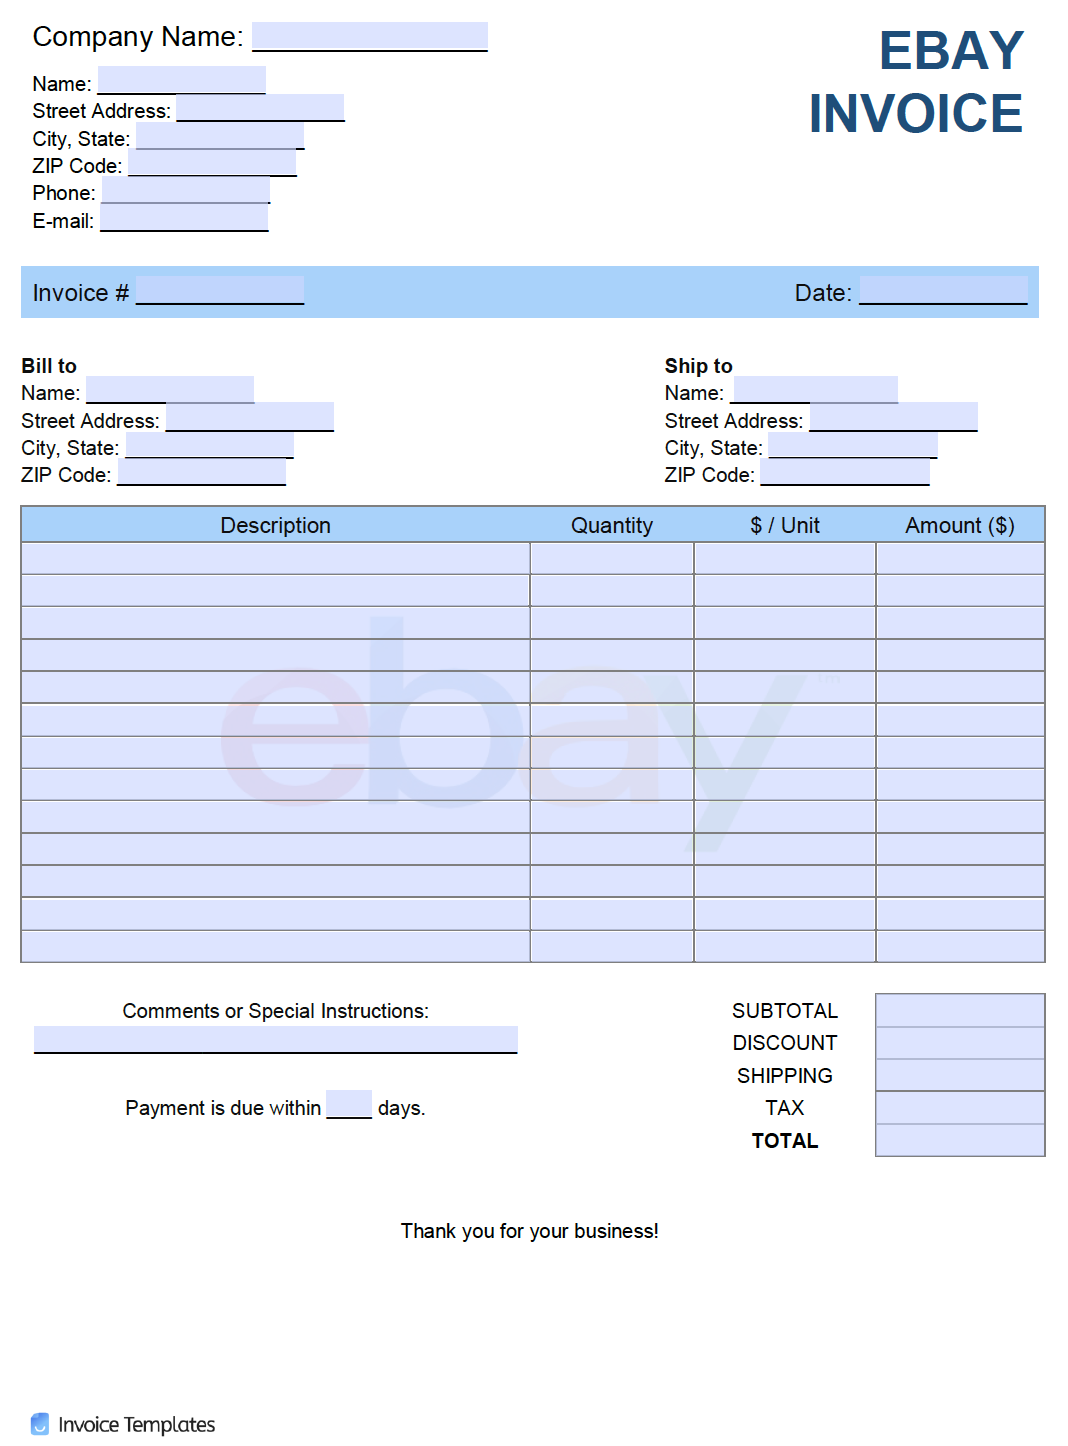 Free Ebay Invoice Template Pdf Word Excel